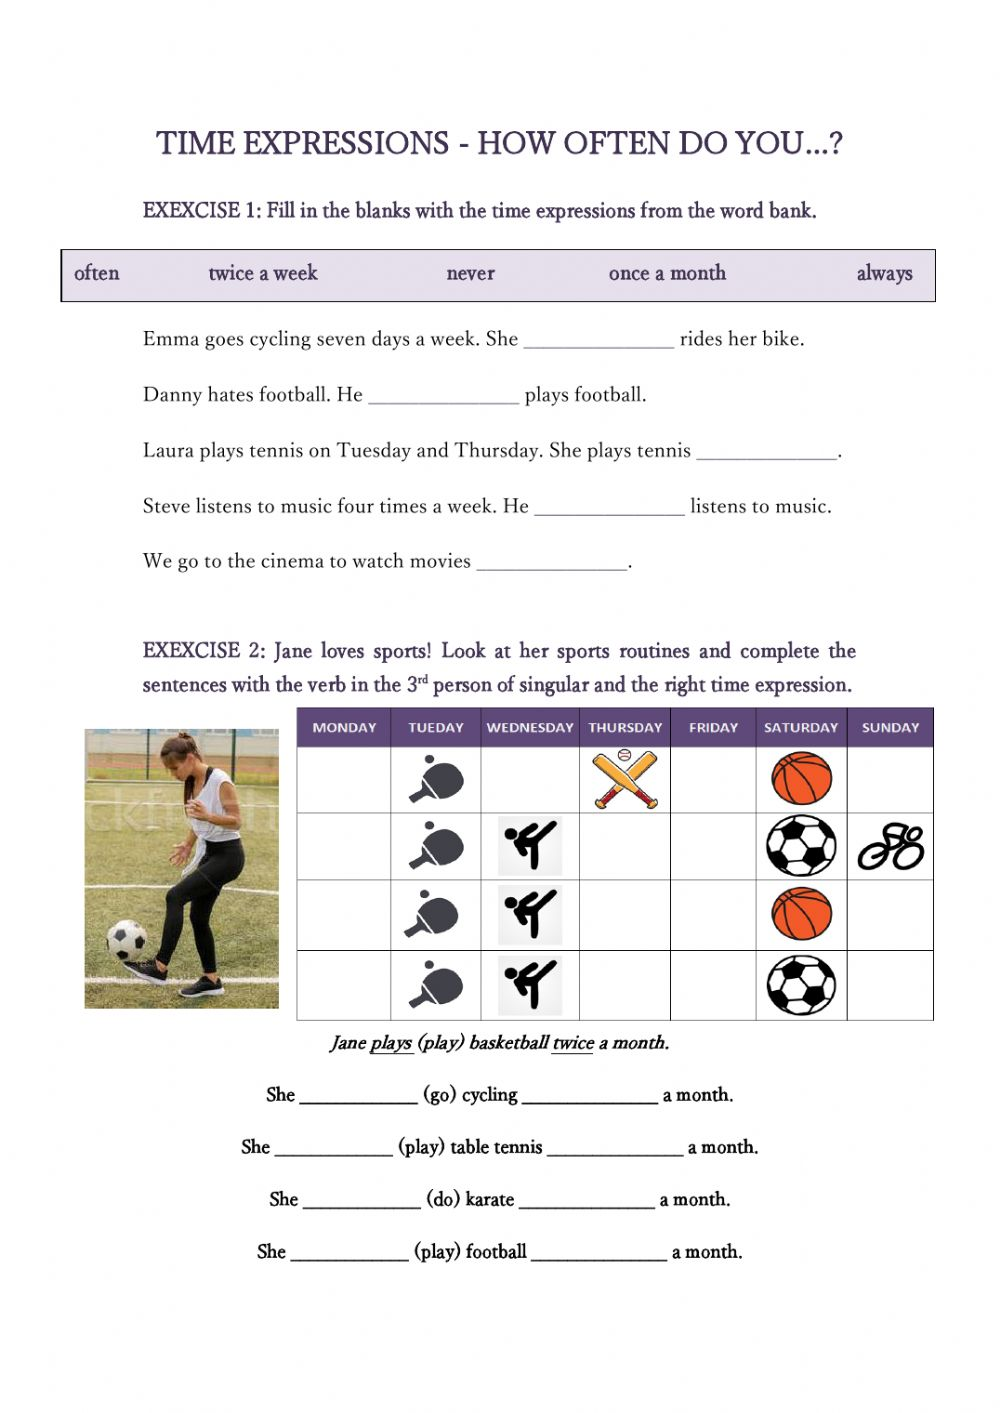 Times expressions frequency worksheet